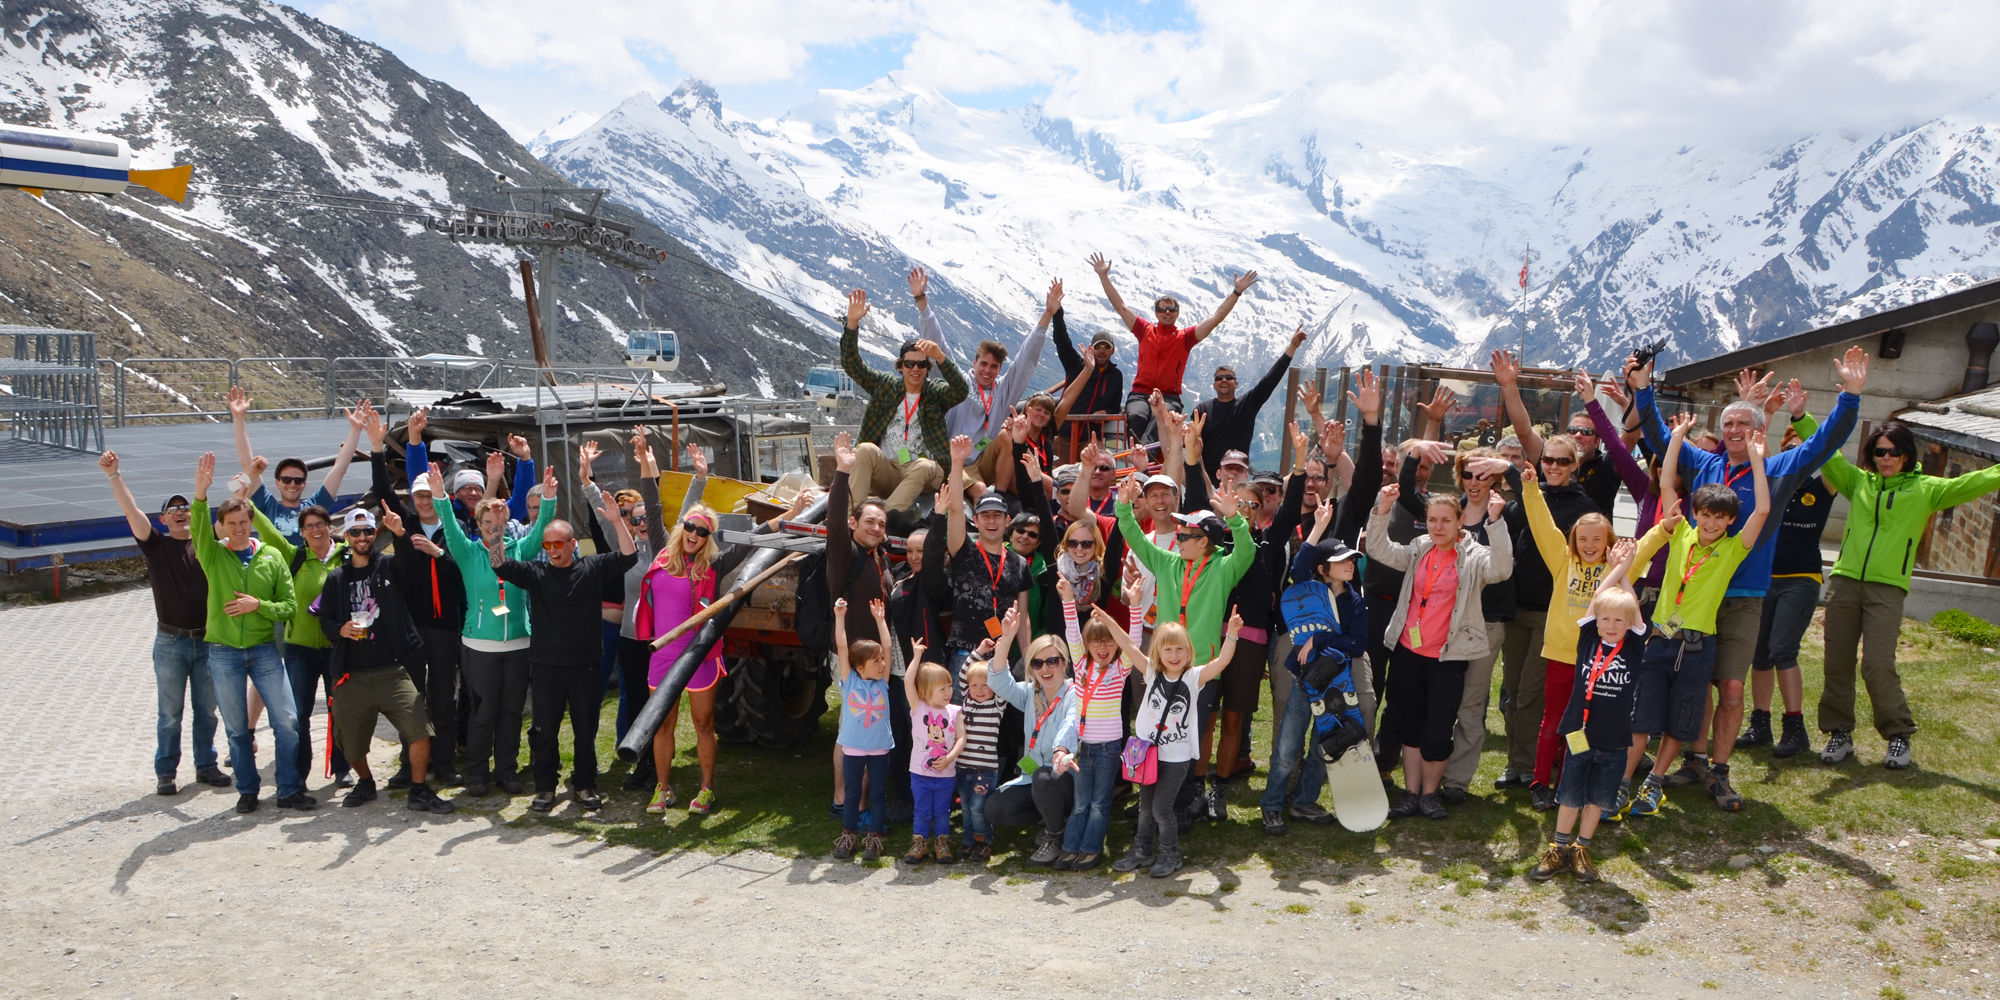 Mountain Cleaning Day in der Freien Ferienrepublik Saas-Fee